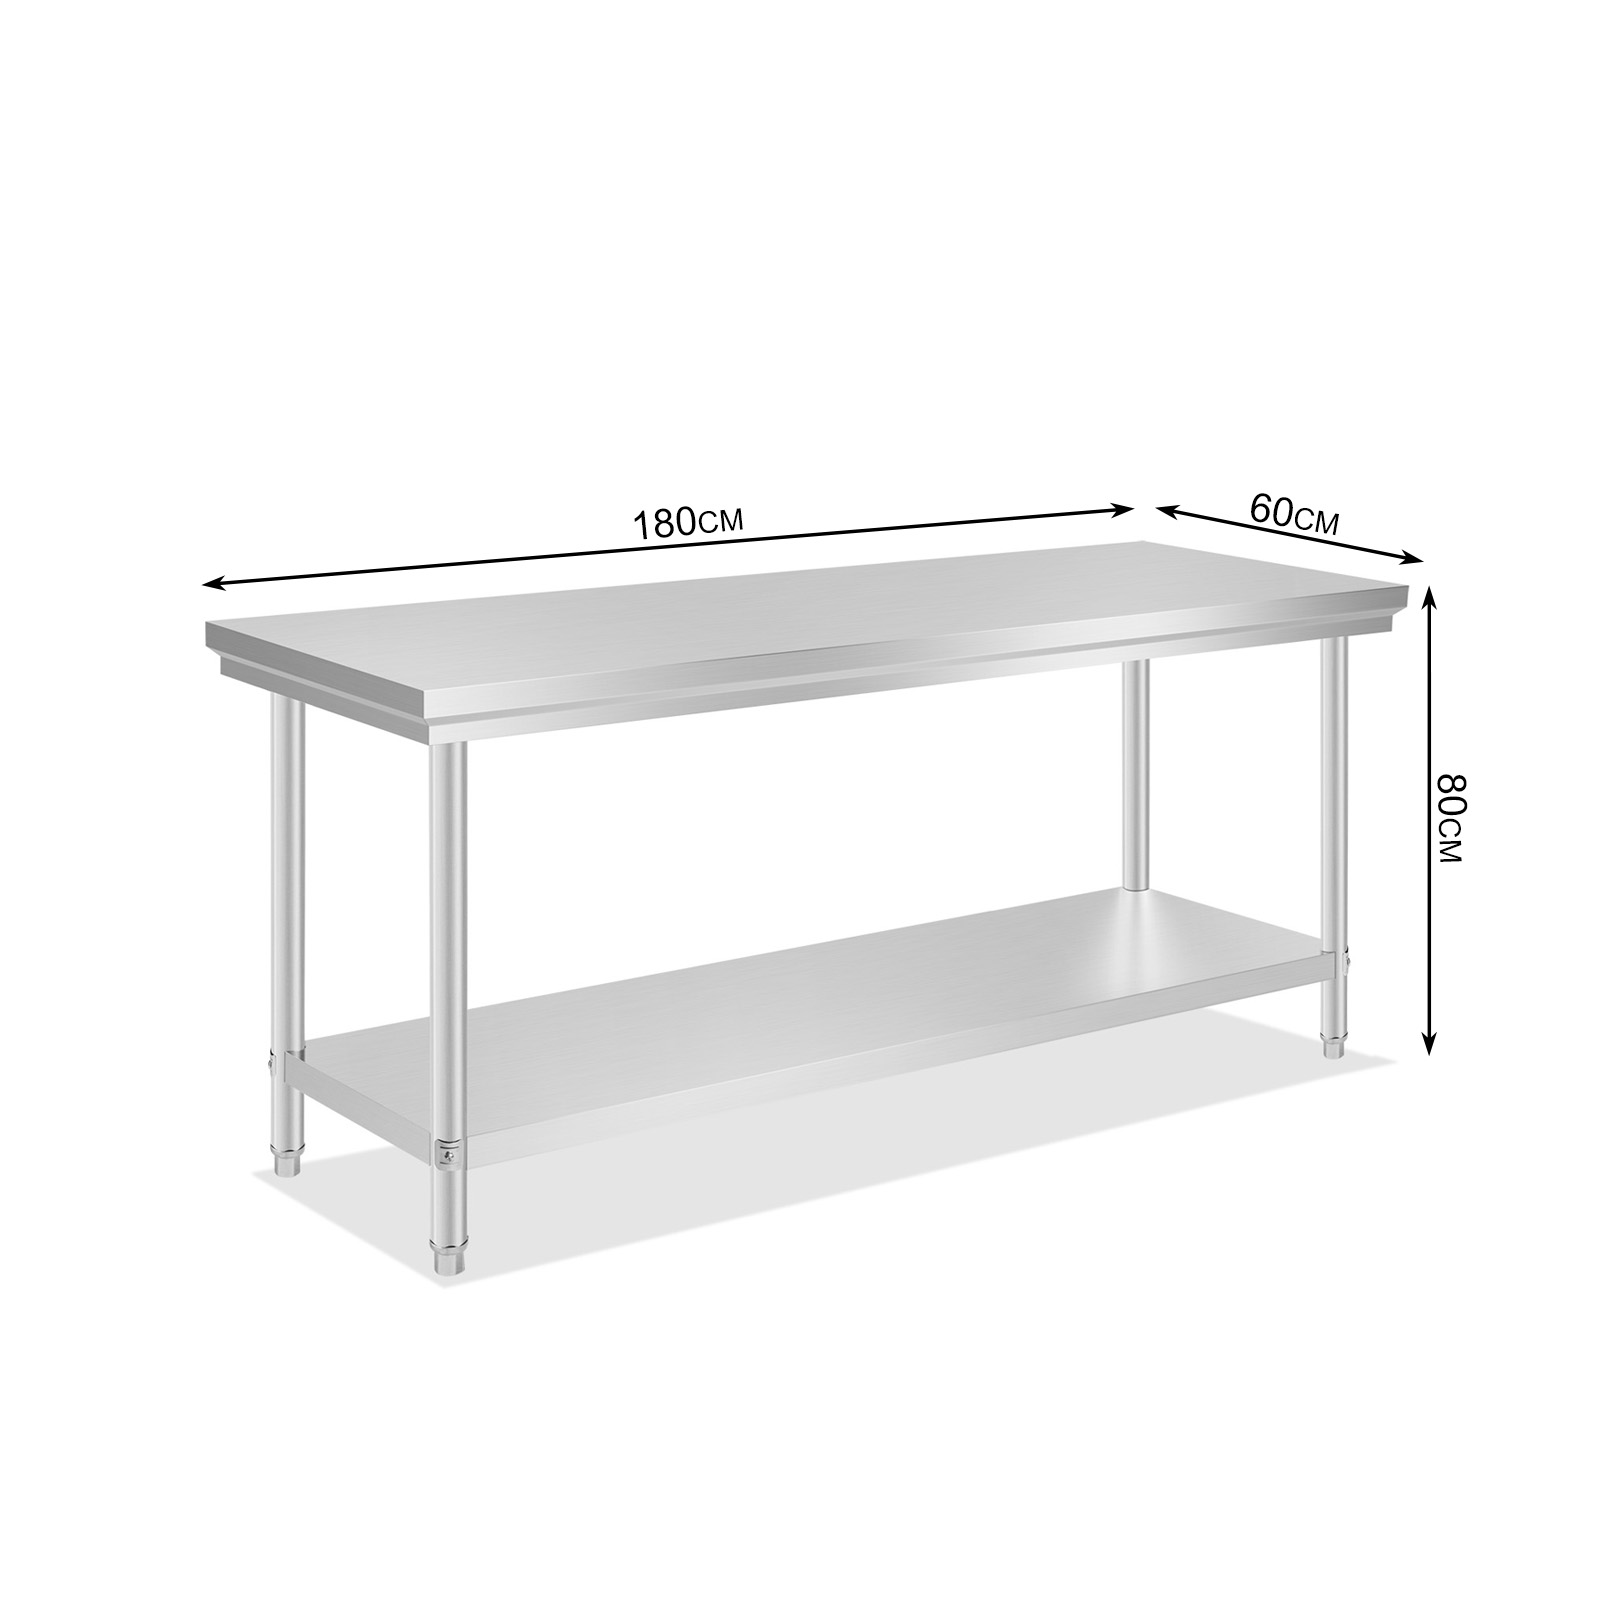 prep tables for kitchen frosted glass doors cabinets vevor new commercial stainless steel food work